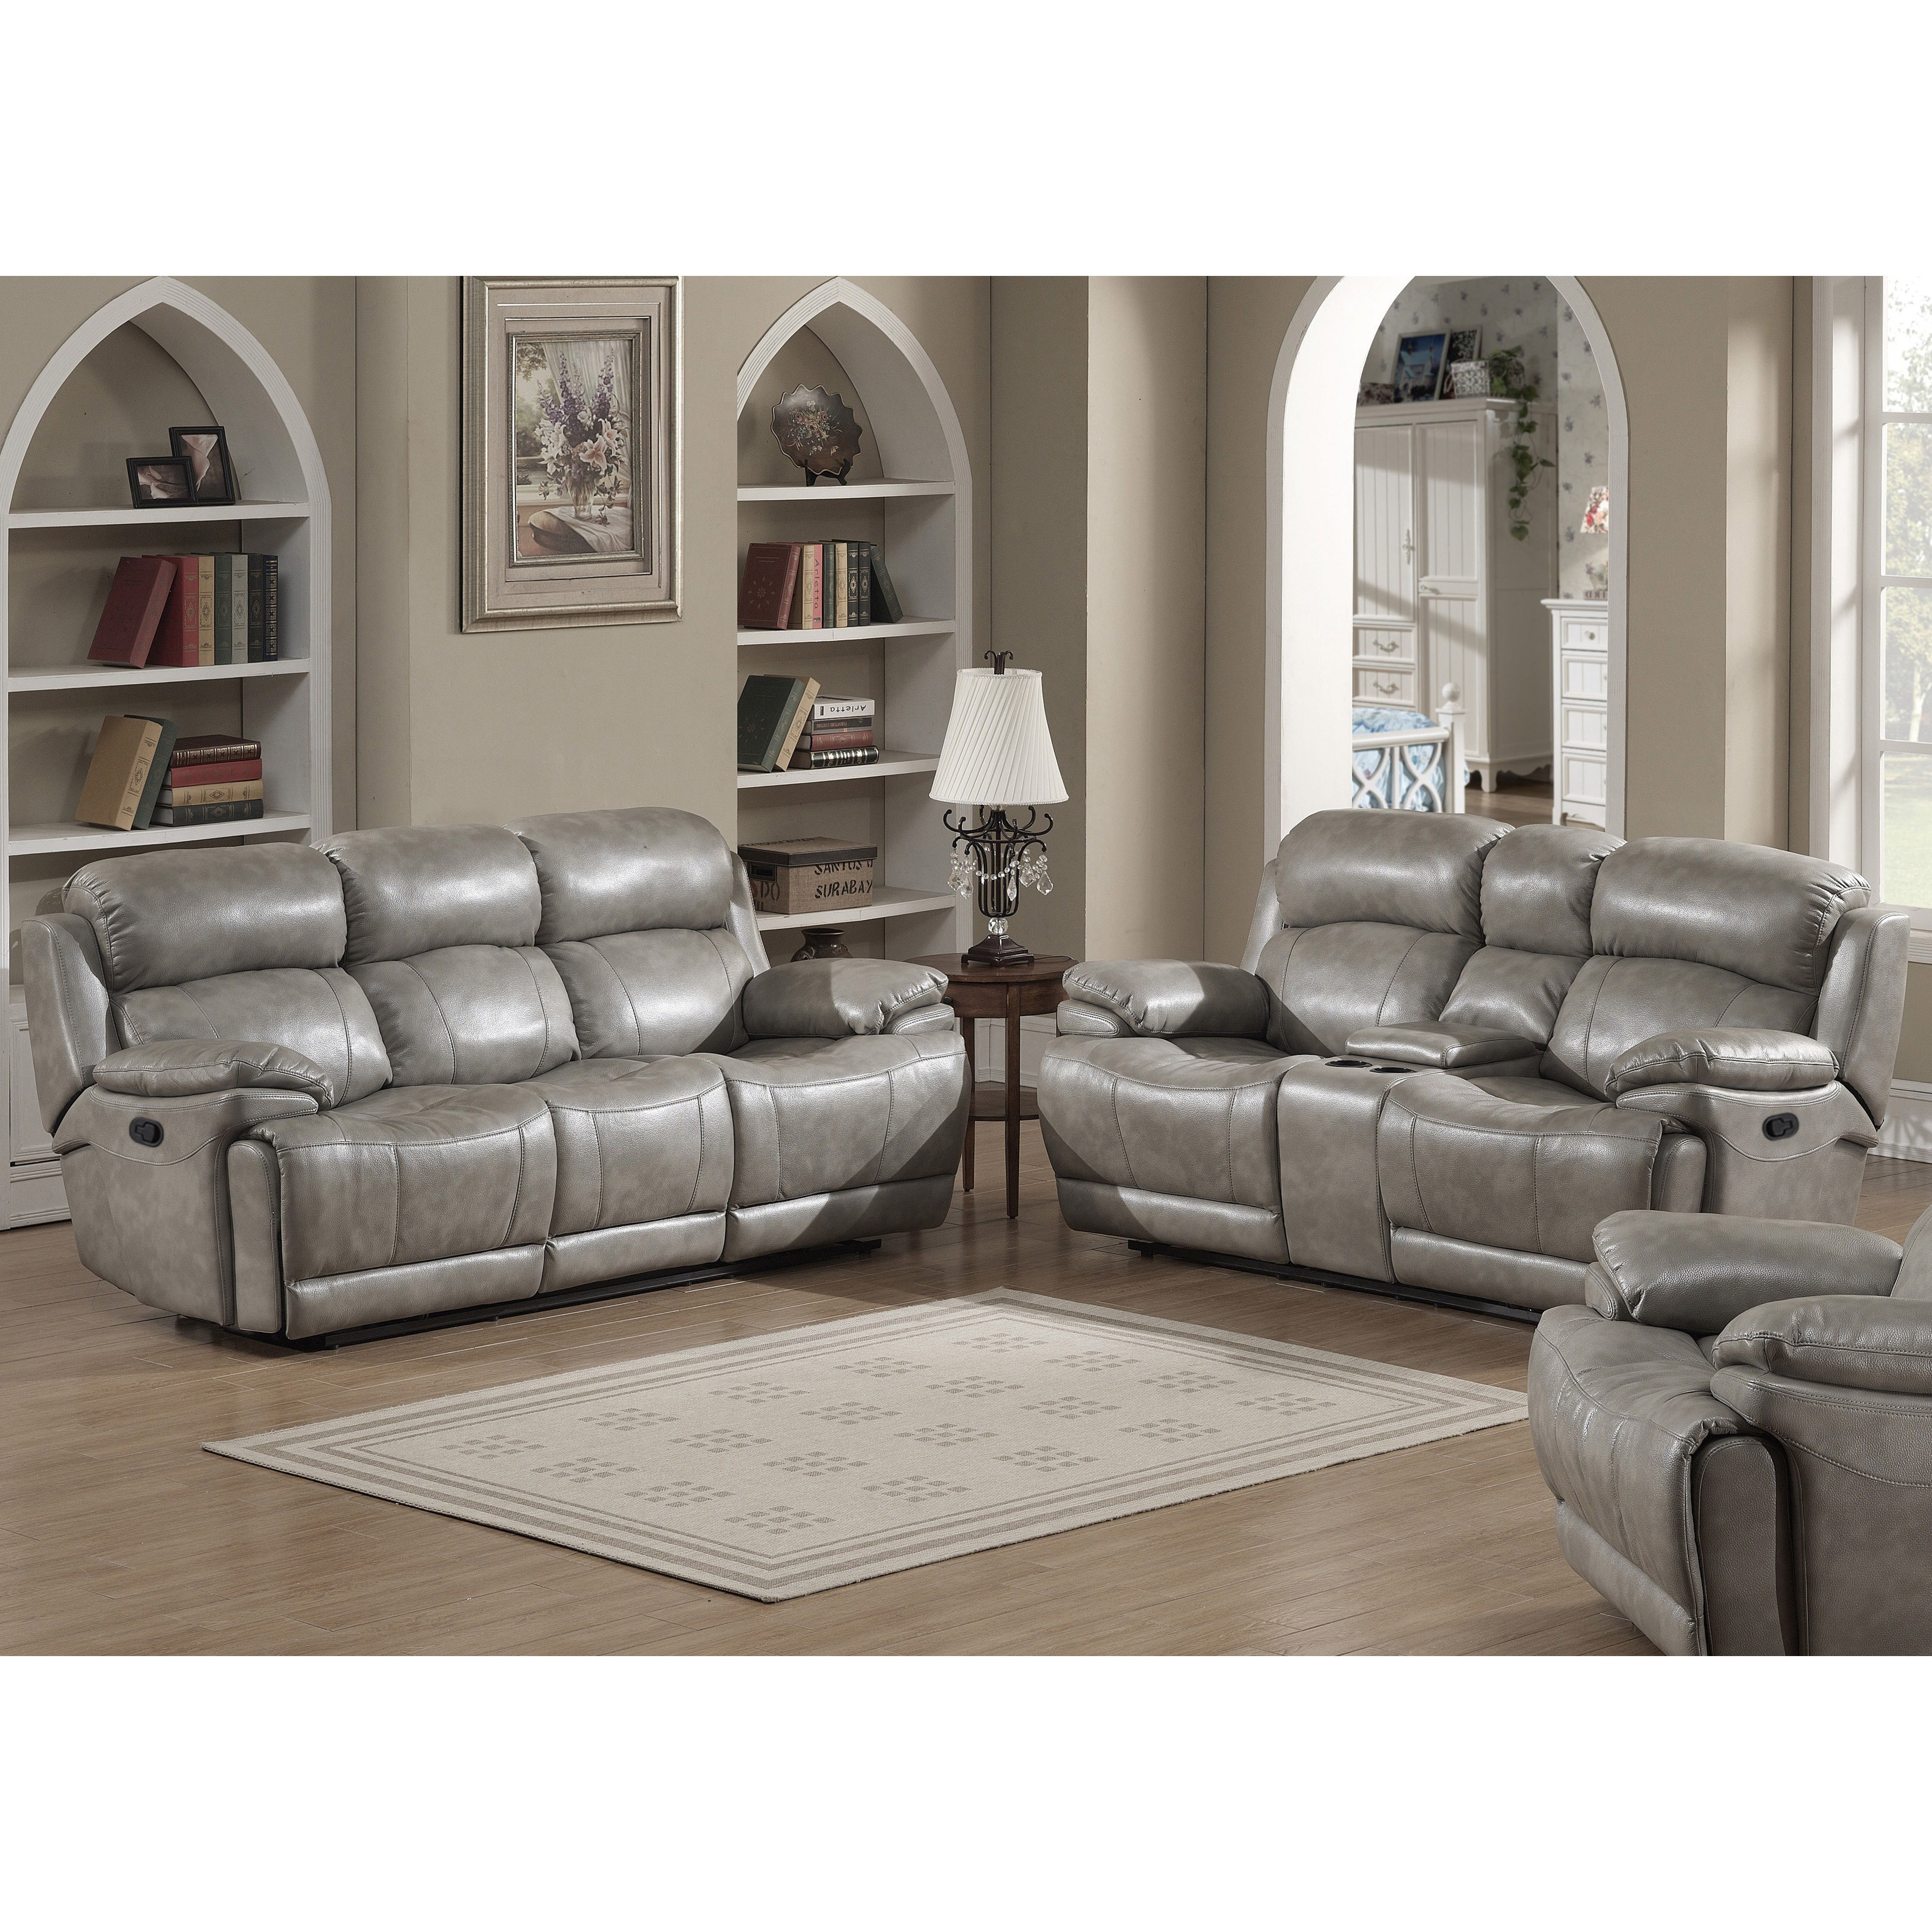 Tremendous Estella Contemporary Sofa And Loveseat With Storage Console 2 Piece Set Ncnpc Chair Design For Home Ncnpcorg